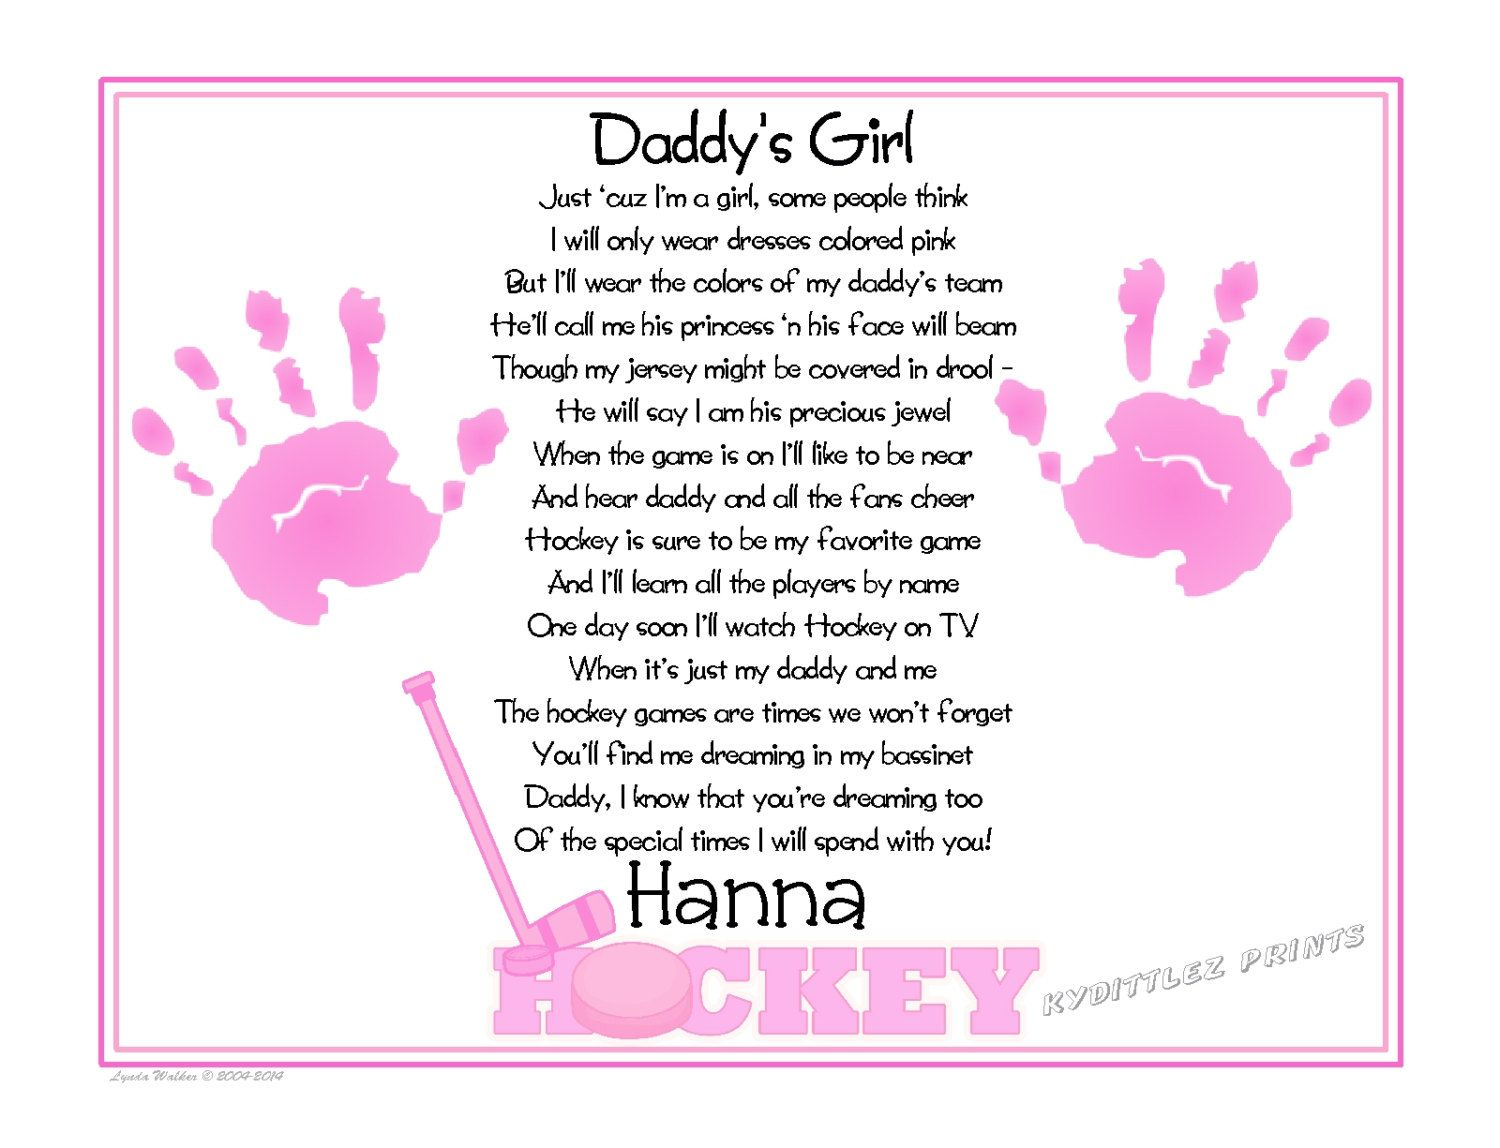 Daddys Little Girl Quotes And Poems Baby Girl Quotes Poems Baby